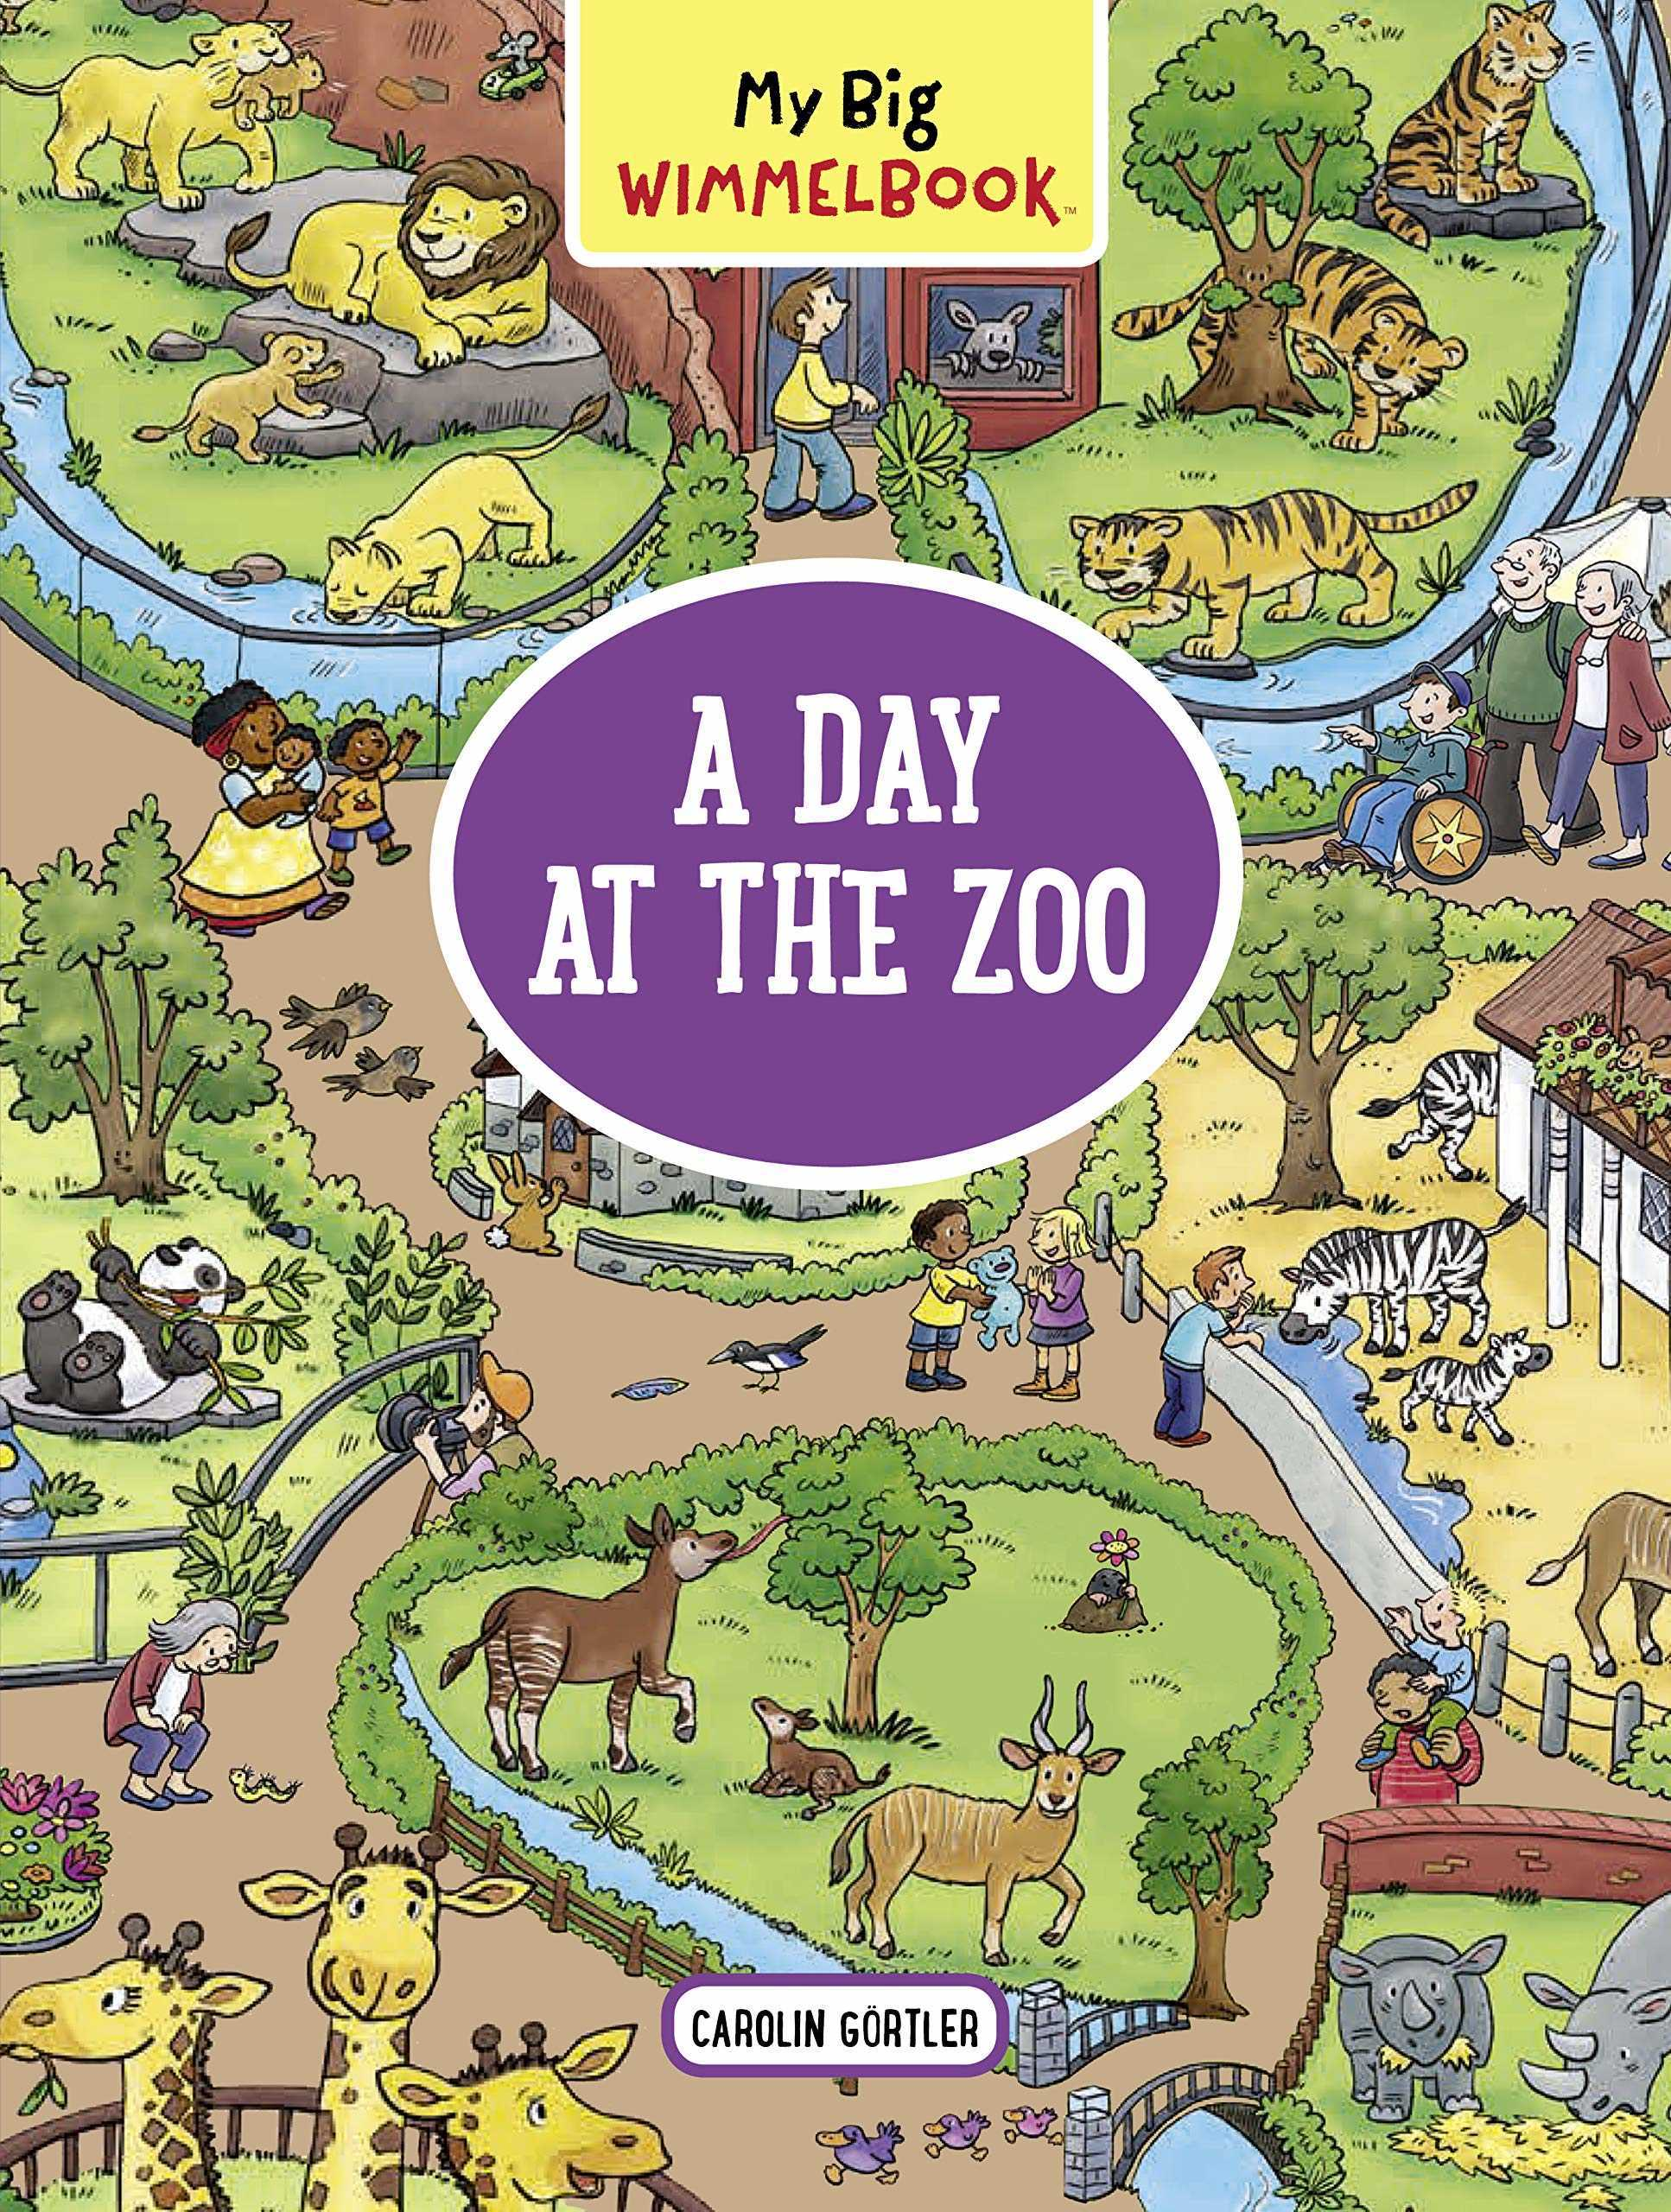 My Big Wimmelbook A Day at the Zoo